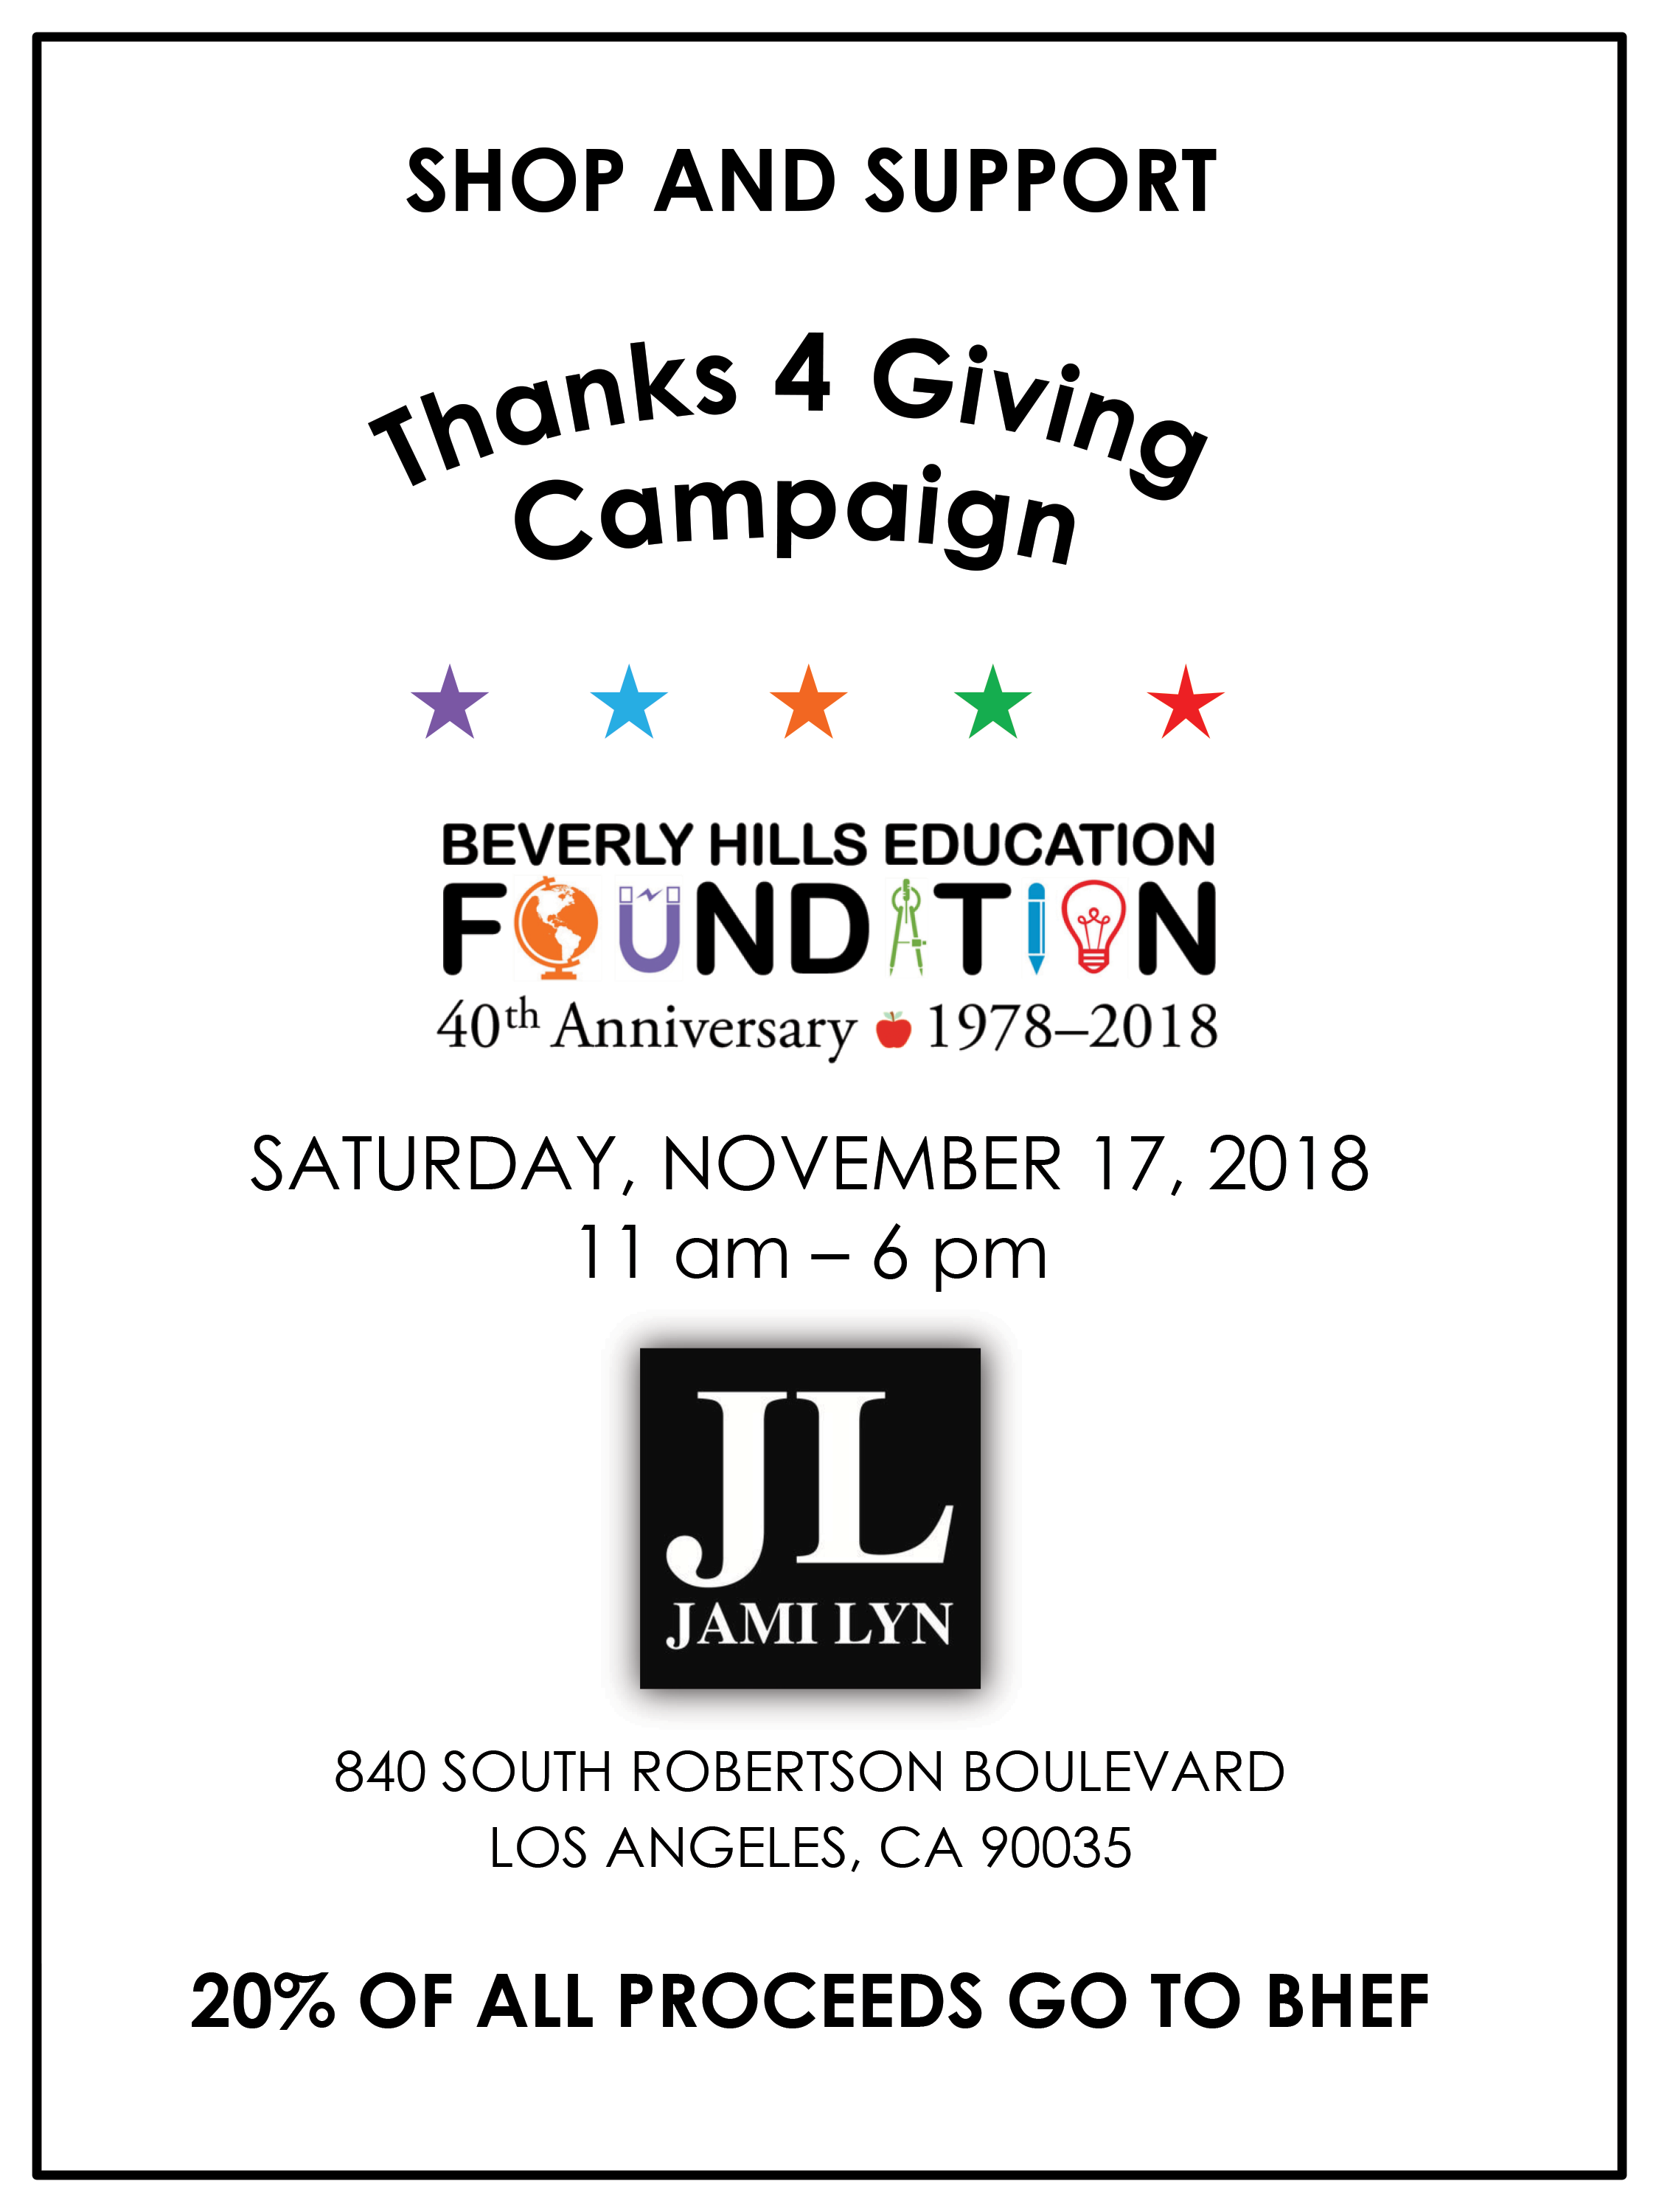 Shop at Jami Lyn and Support BHEF! November 17, 2018 11 AM through 6 PM. 20% of all proceeds will be donated to BHEF.